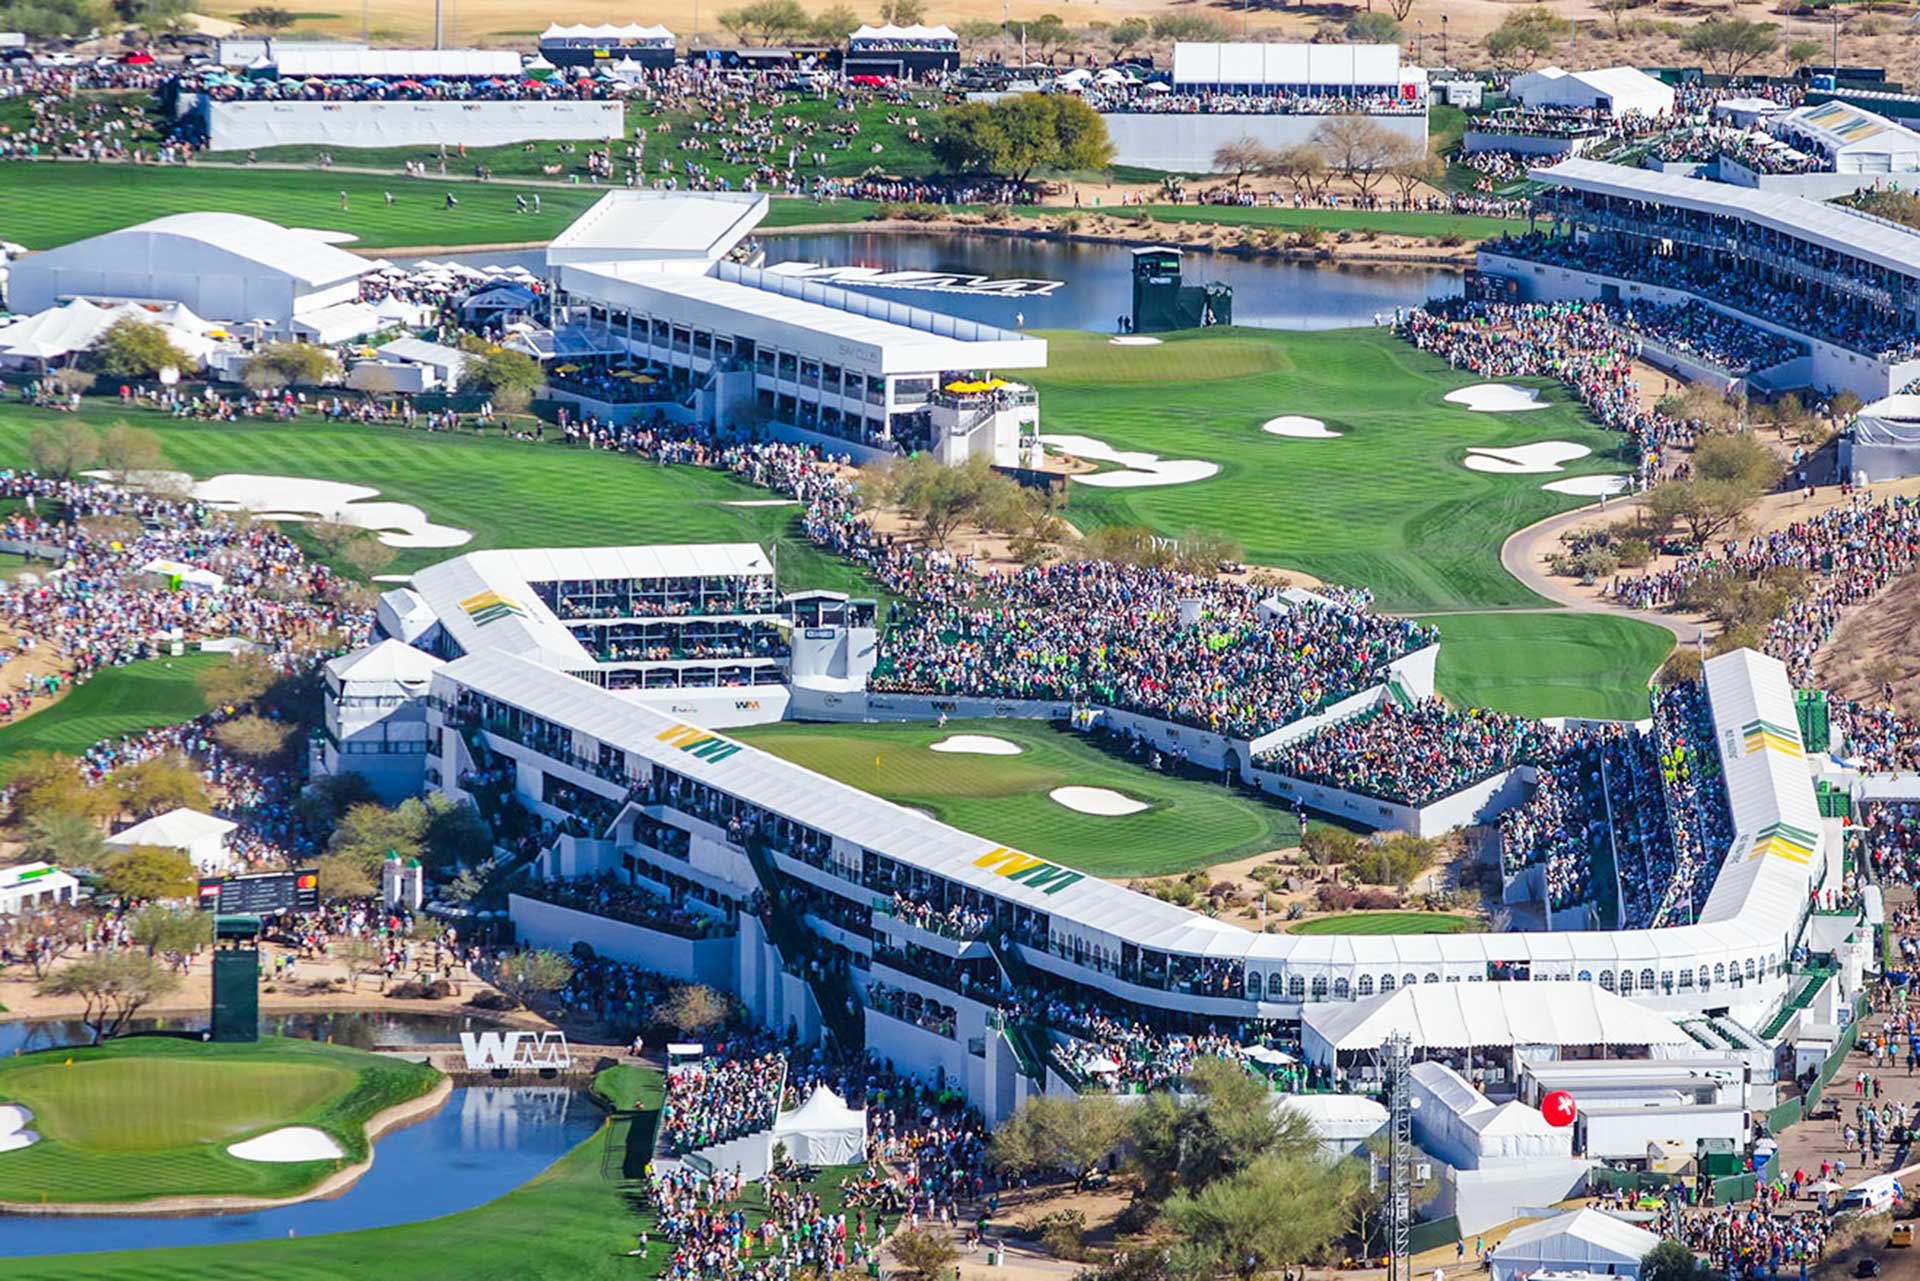 The 16th hole at TPC Scottsdale